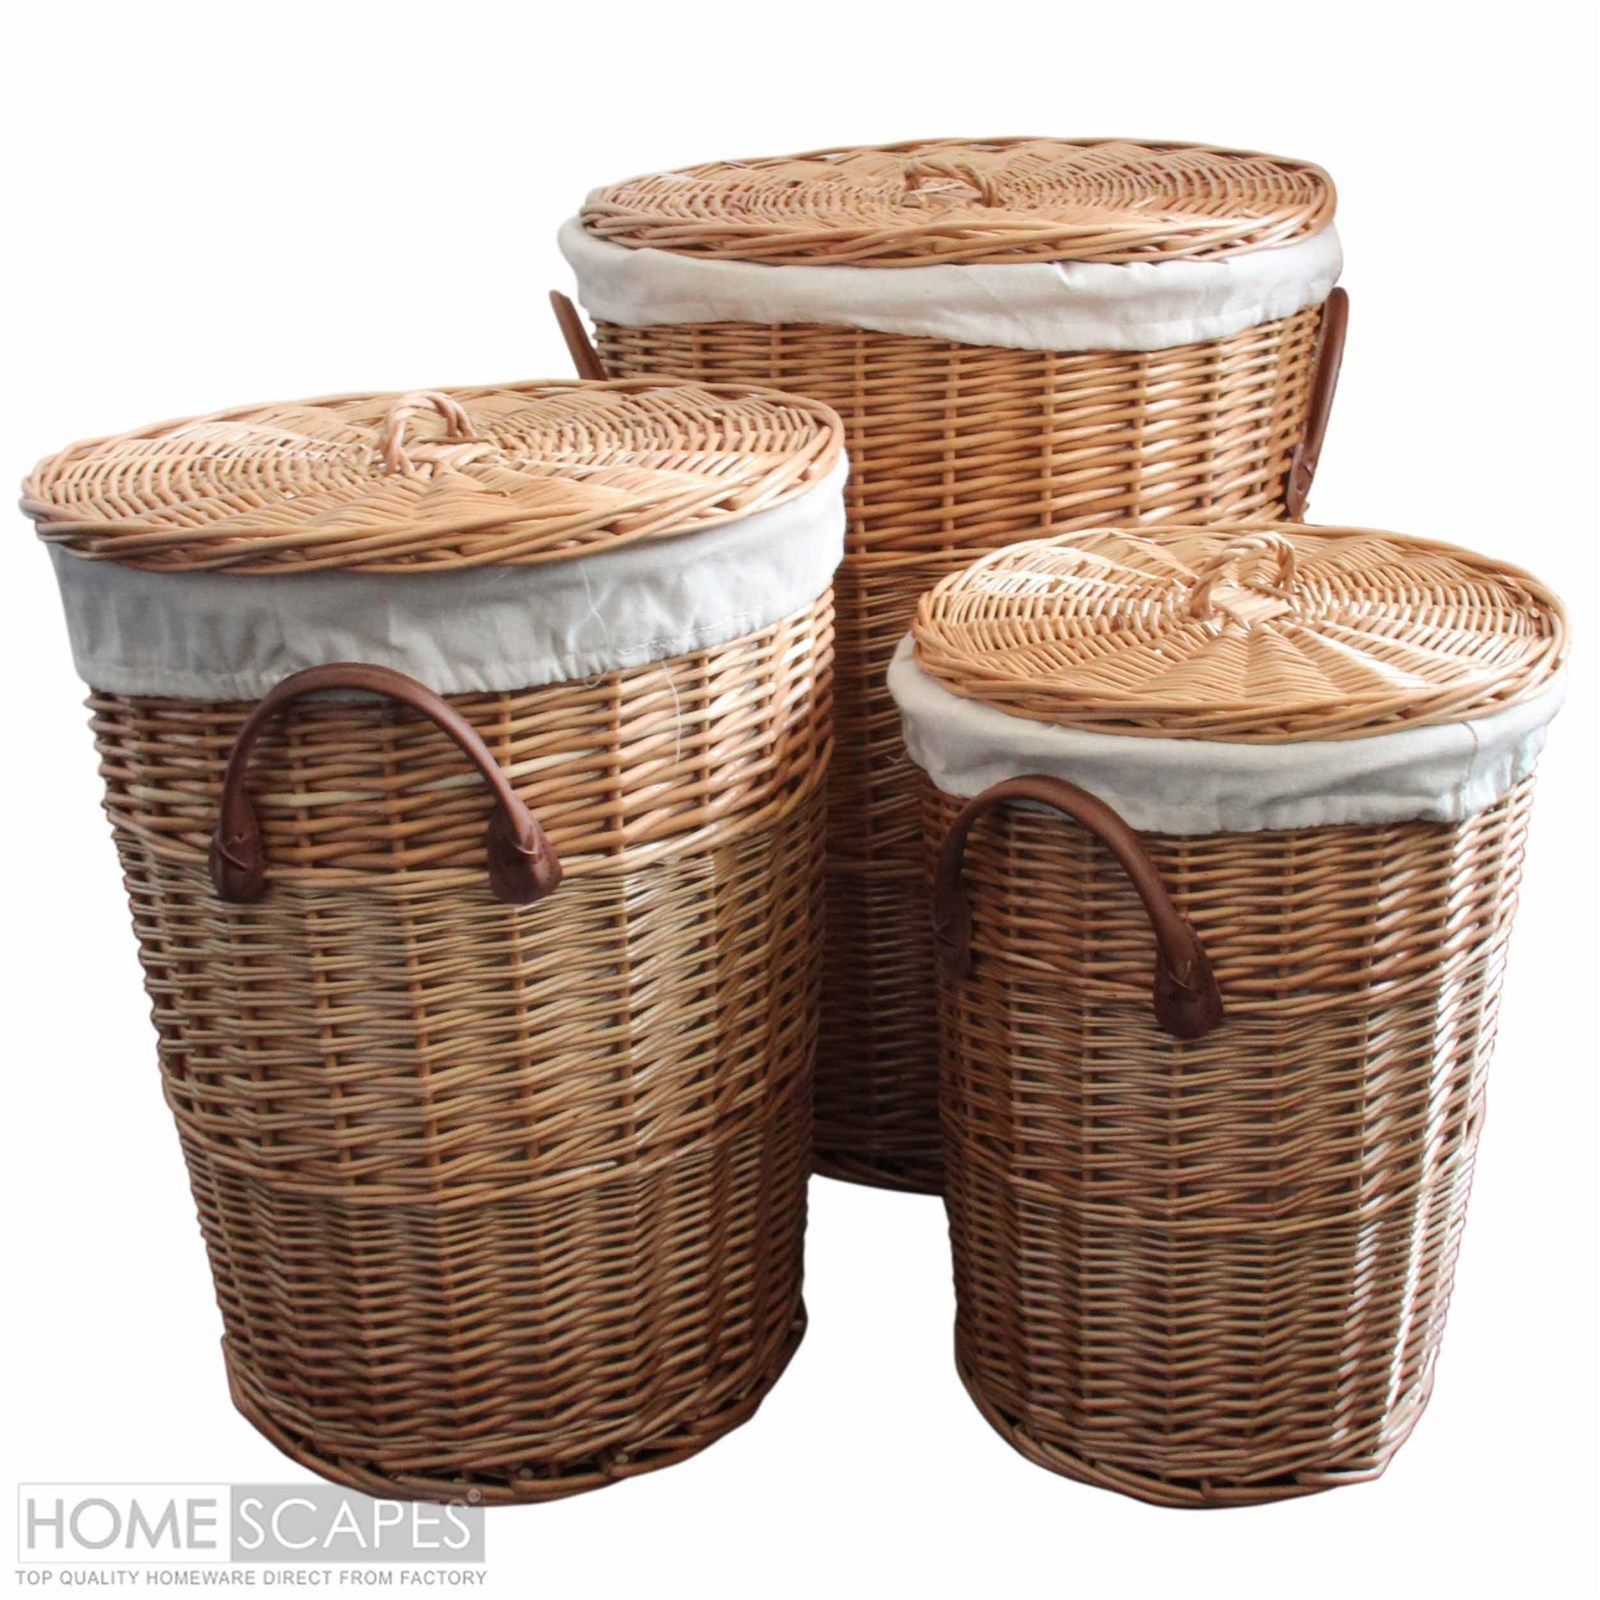 Set Of 3 Natural Round Willow Wicker Laundry Baskets within proportions 1600 X 1600